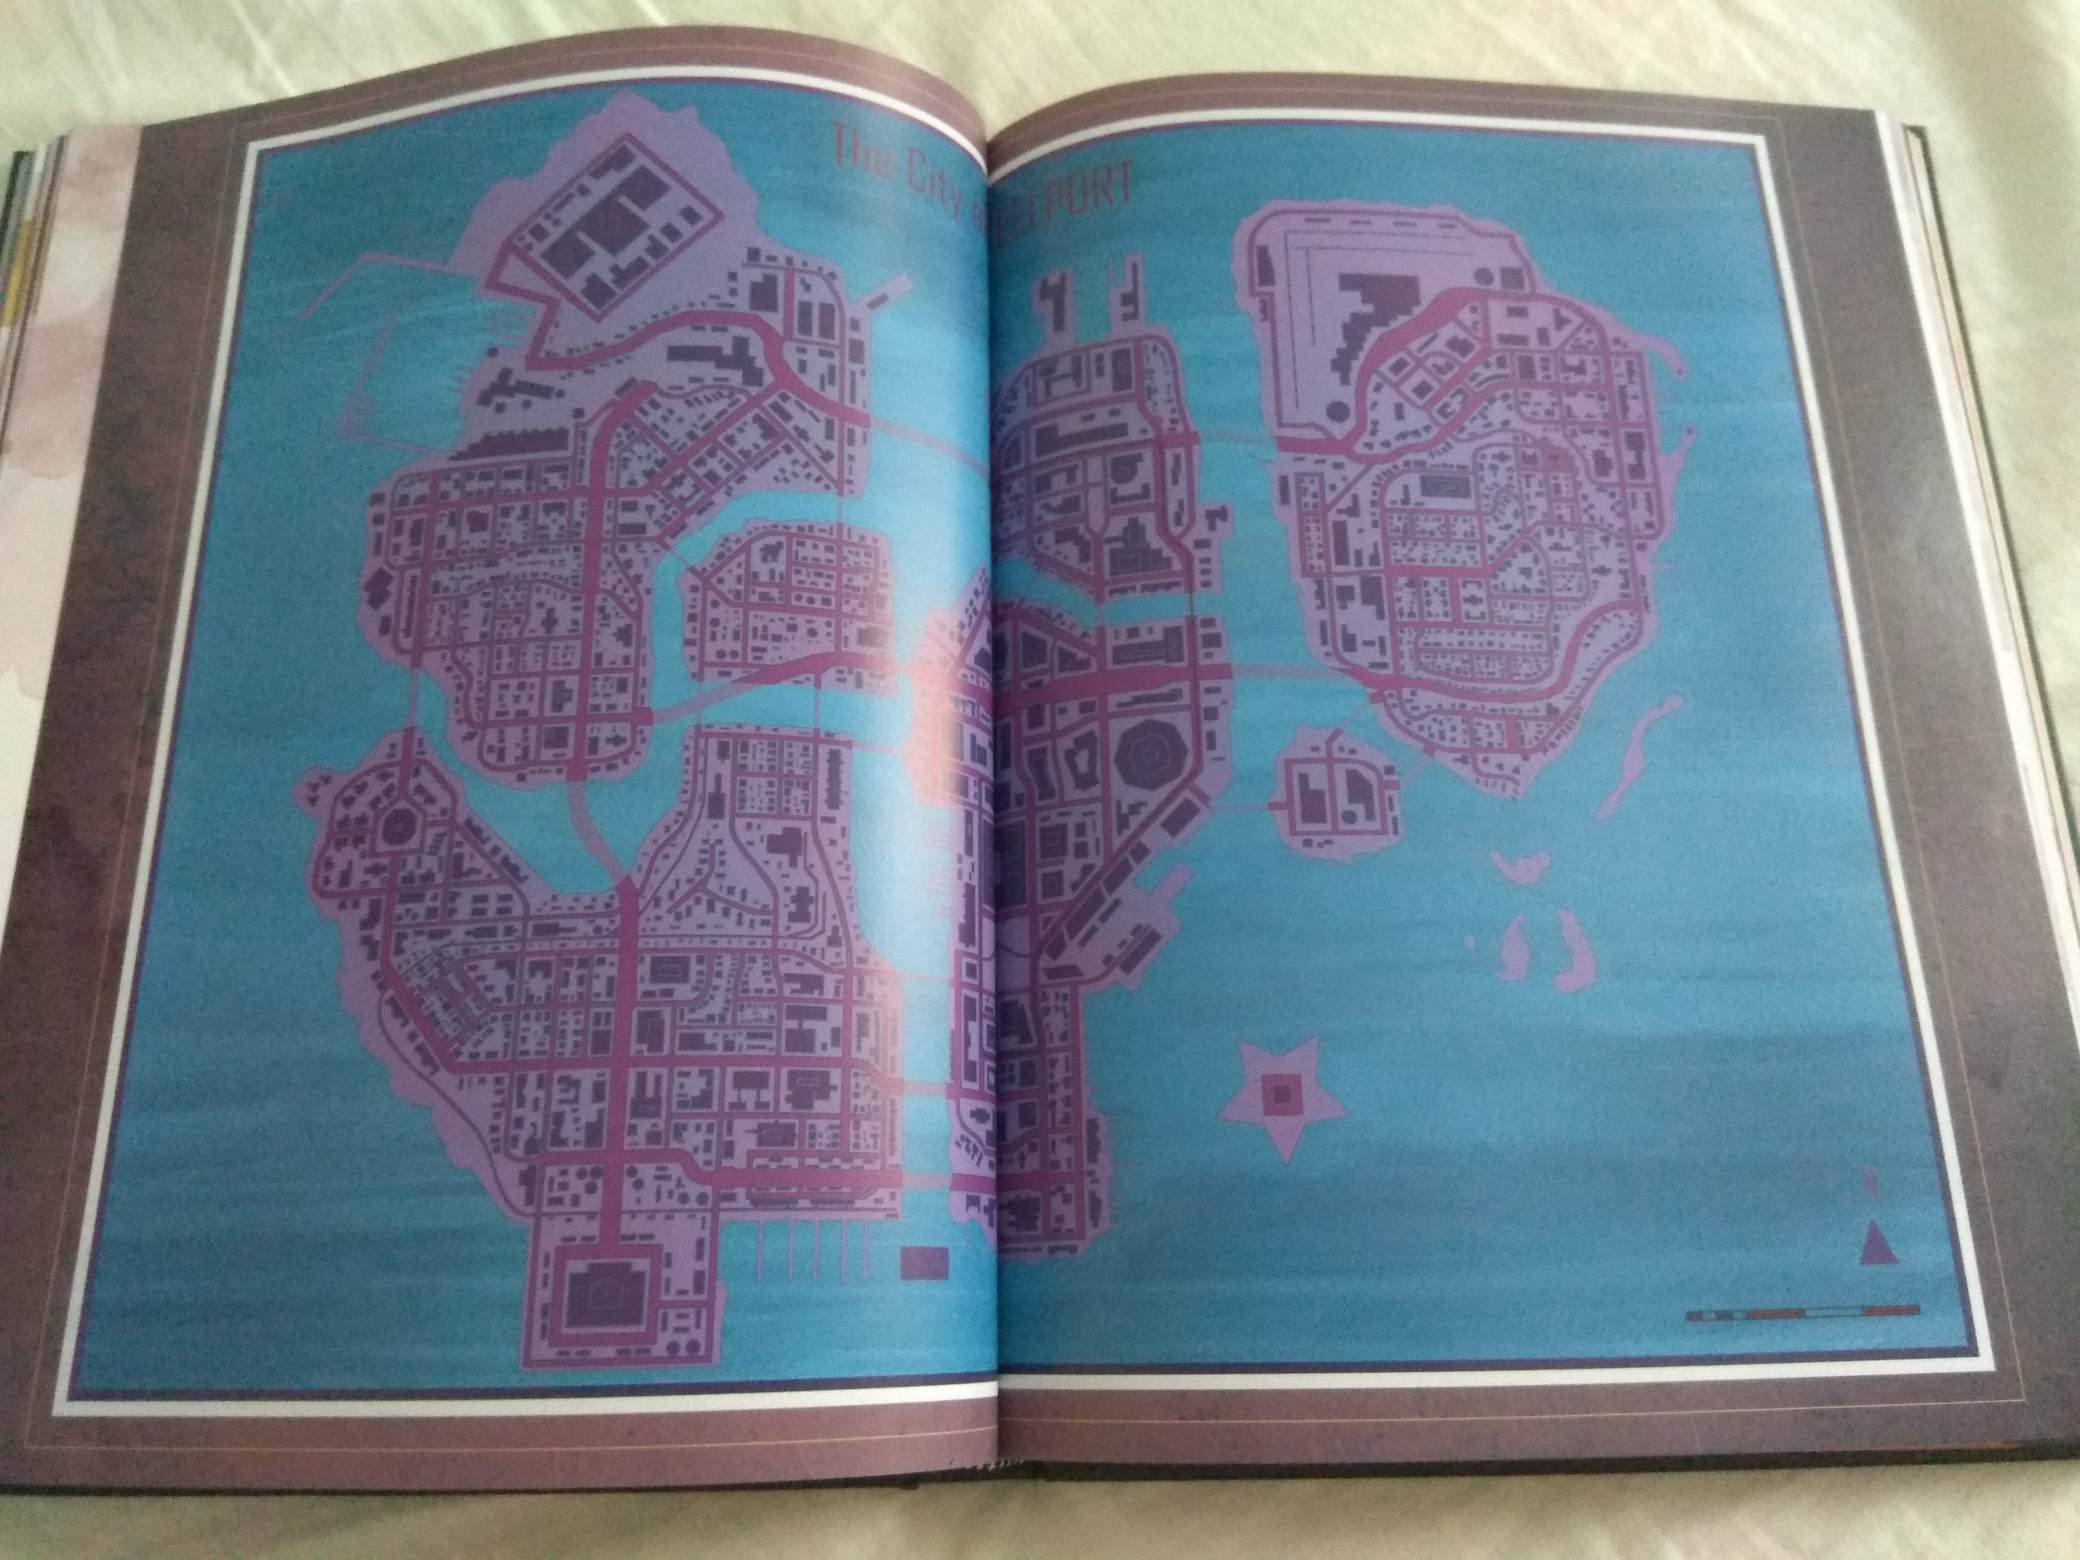 Recenze knihy Virtual Cities: An Atlas & Exploration of Video Game Cities 125899025 813114879248860 2611710444688925613 n